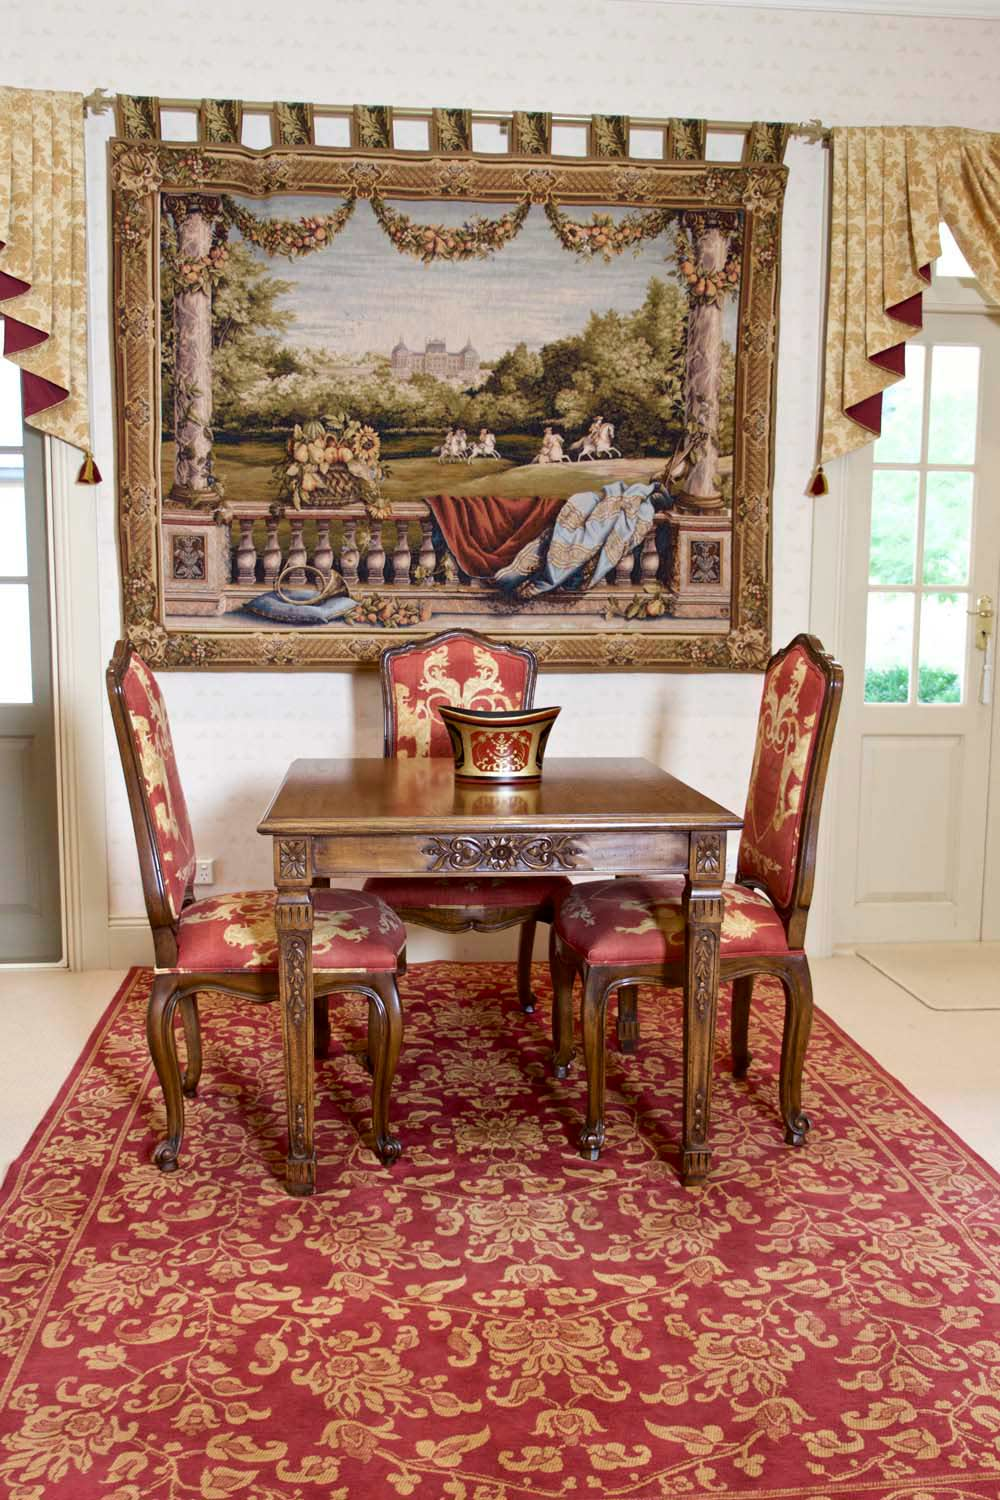 20 Grand country manor in the French style interior